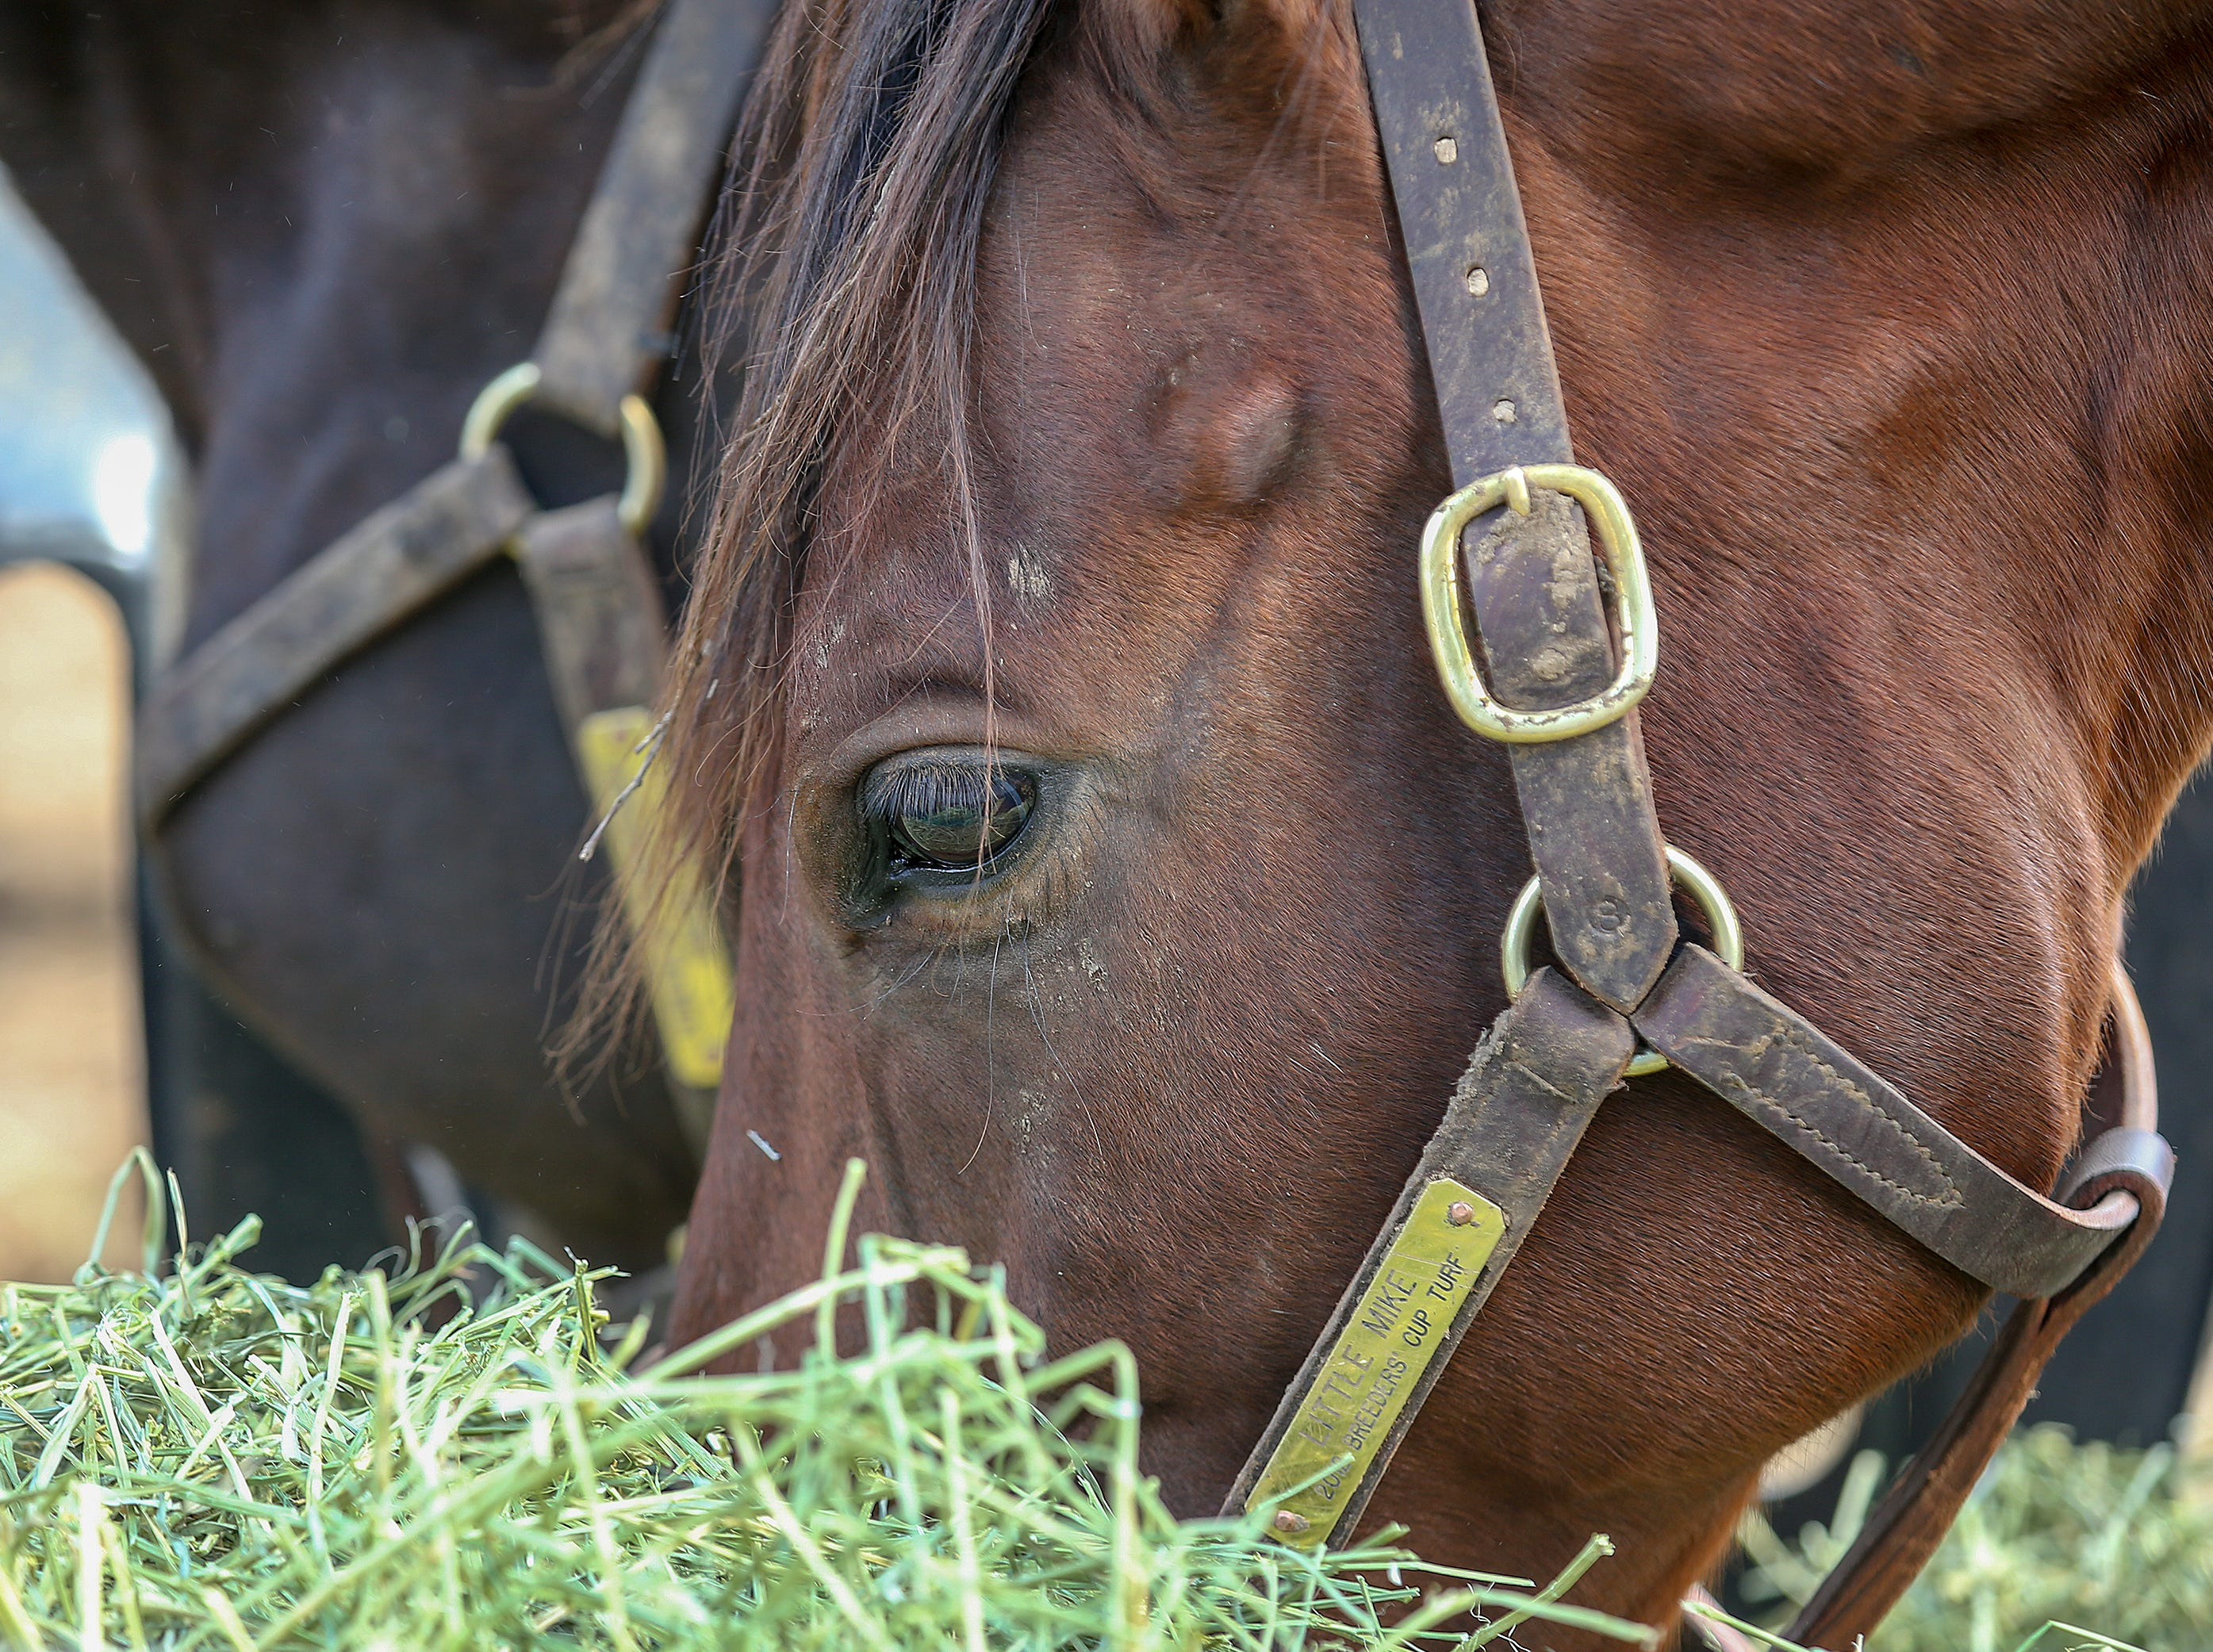 Old Friends Farm resident Little Mike won the Breeders Cup Turf in 2012.October 11, 2018